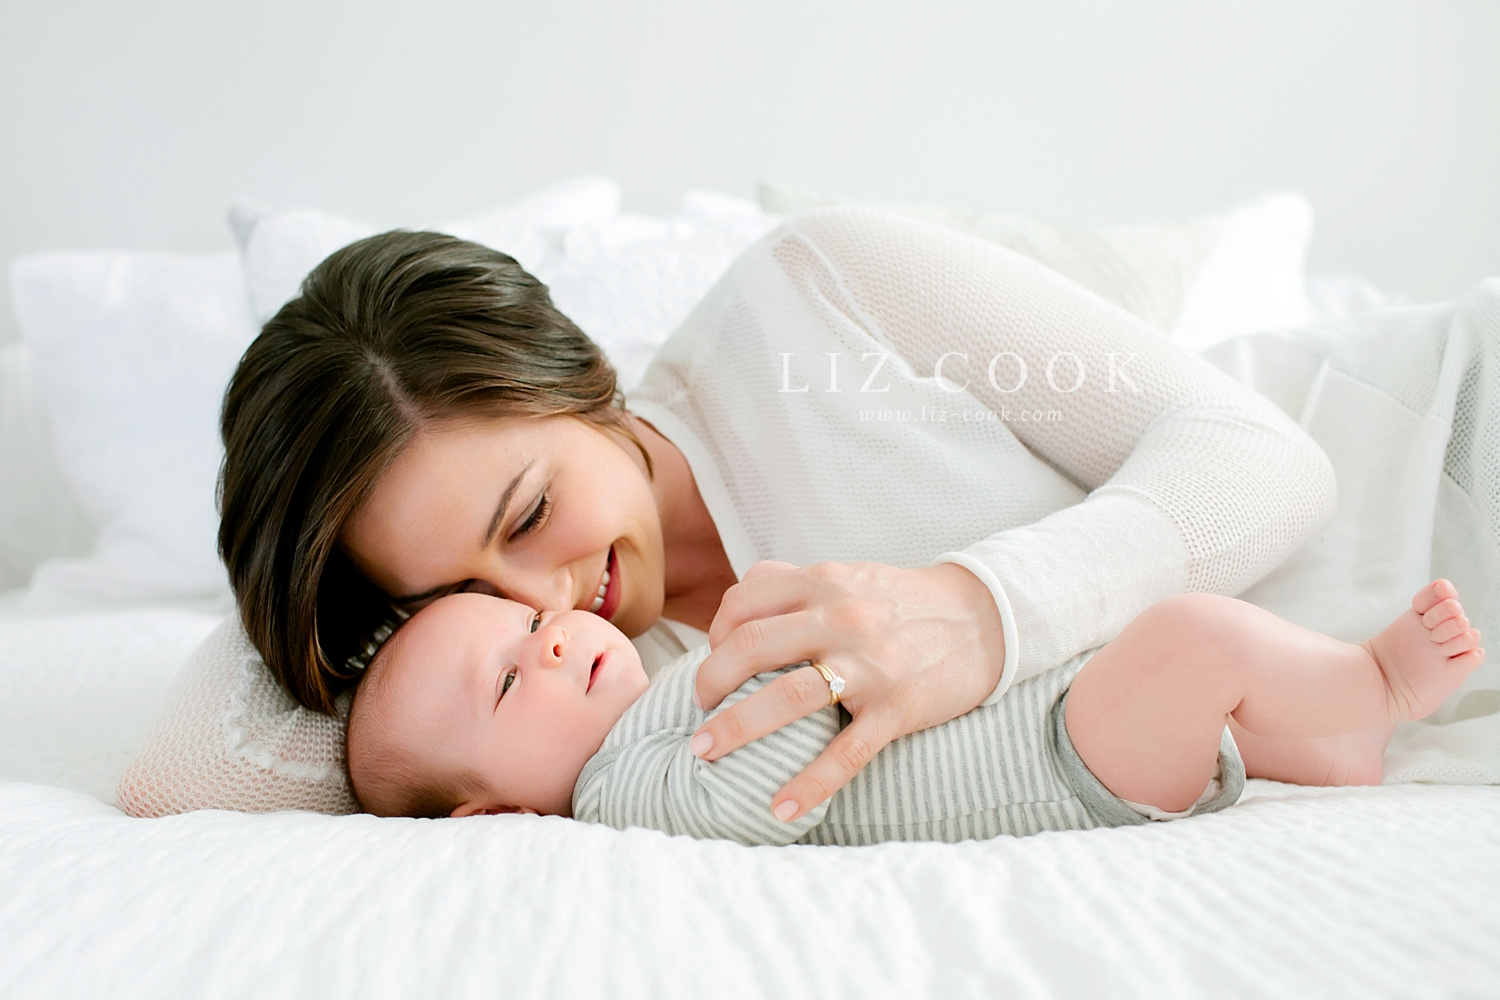 lynchburg_virginia_studio_newborn_session_0005.jpg